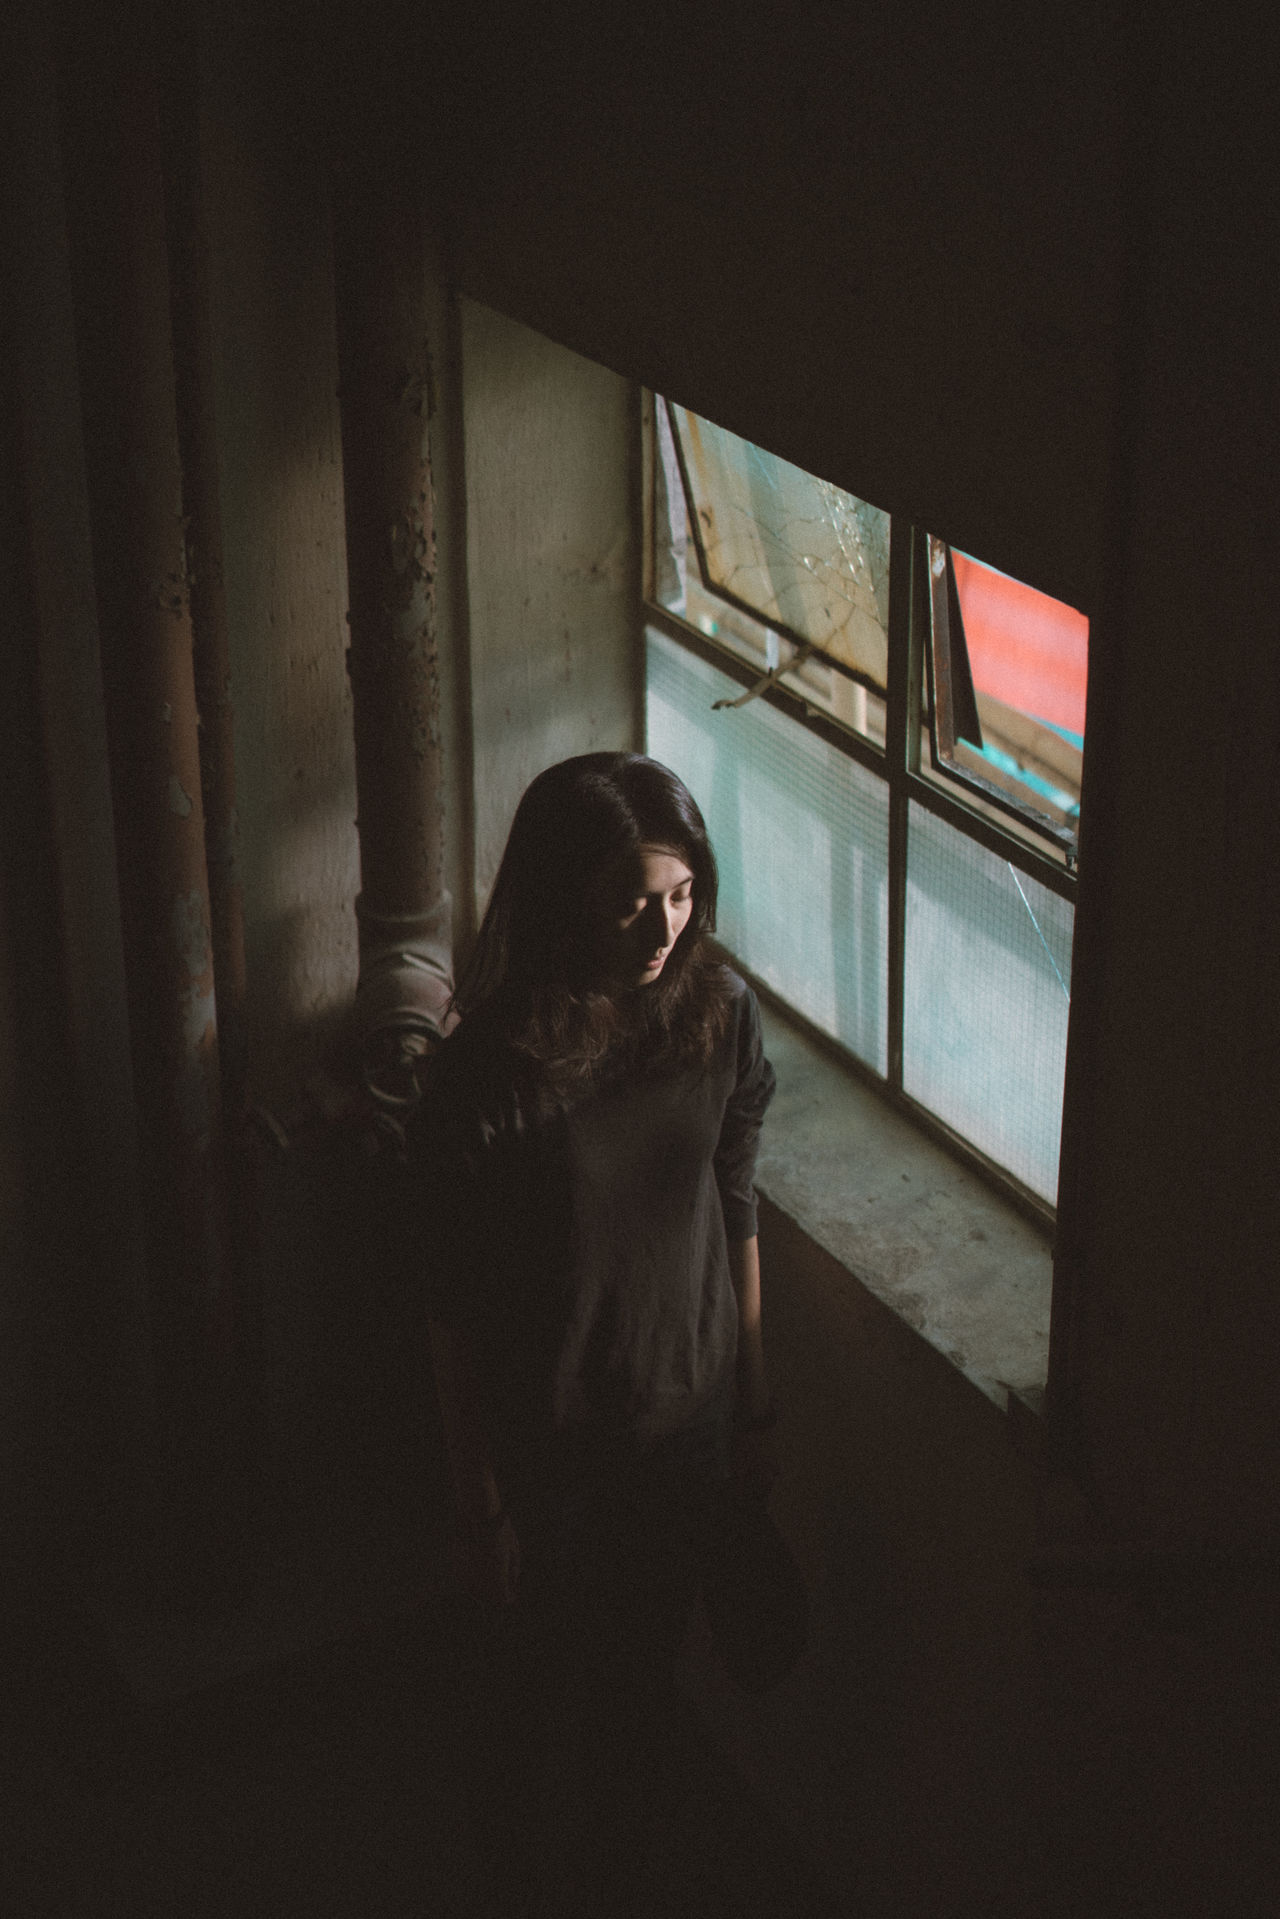 WOMAN LOOKING THROUGH WINDOW IN HOME